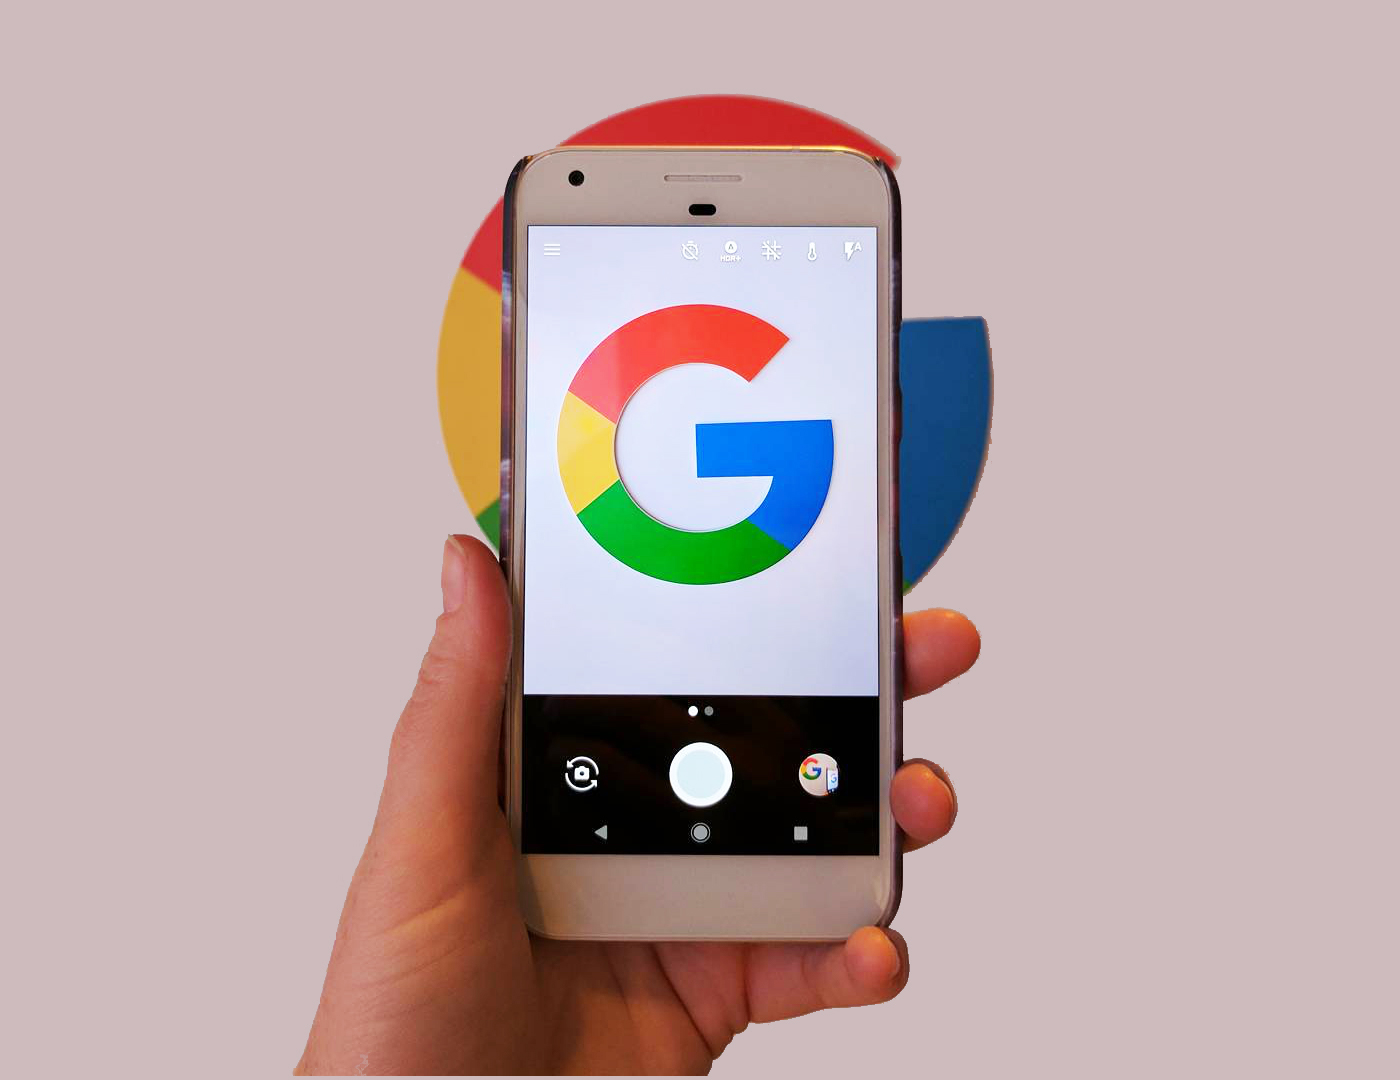 Mossberg  Google s first phone is first rate. Walt Mossberg Profile and Activity   Page 3   Recode